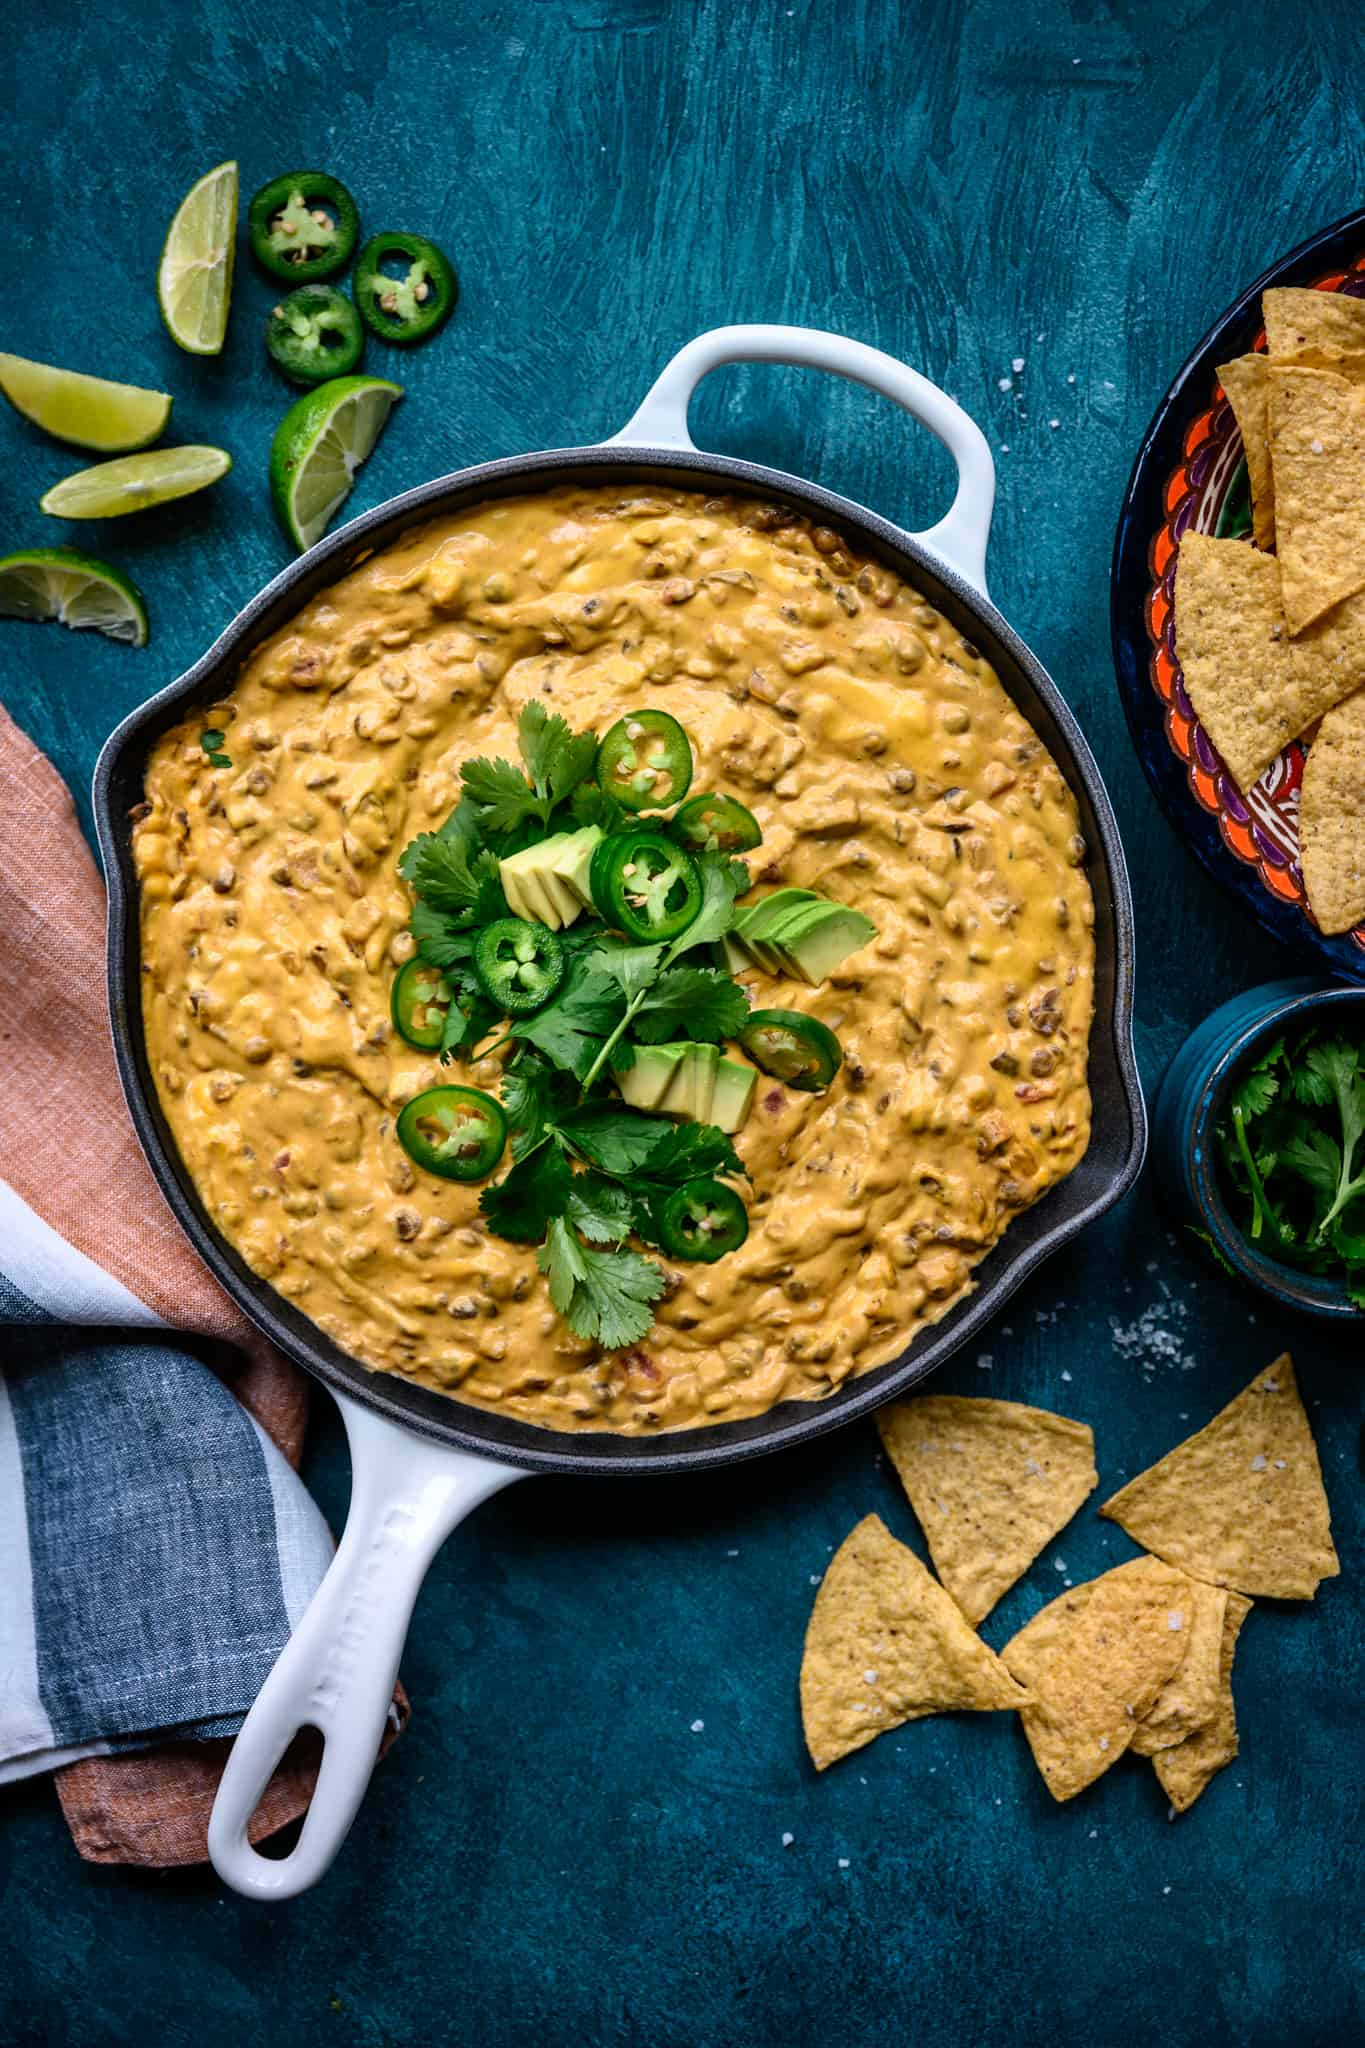 overhead view of vegan chile con queso dip with tortilla chips in skillet on blue background